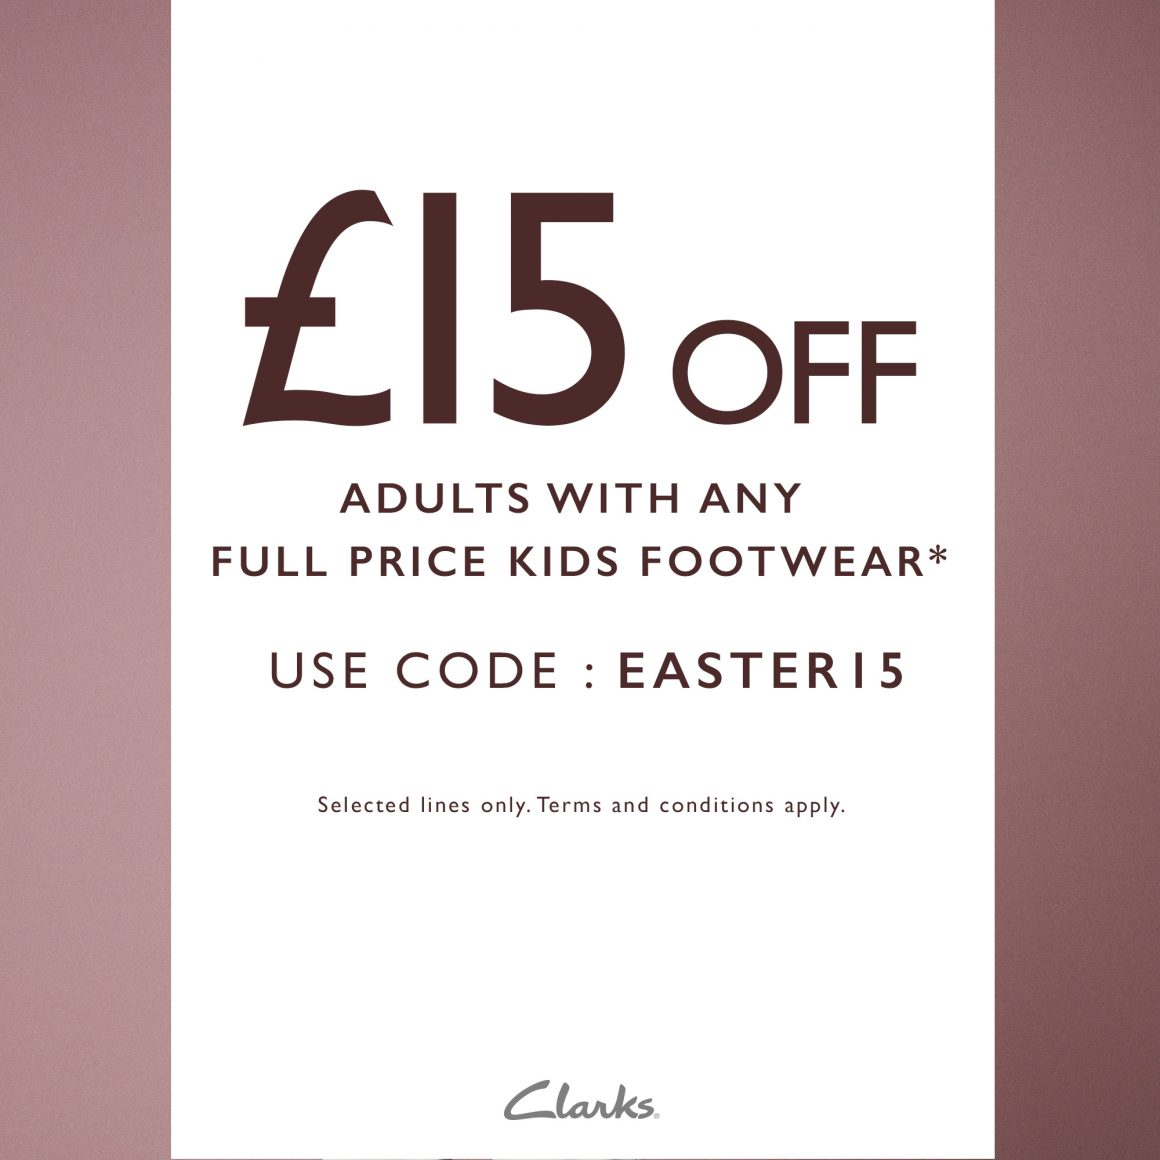 £15 OFF CLARKS SHOES WHEN PURCHASING FULL PRICE KIDS SHOES